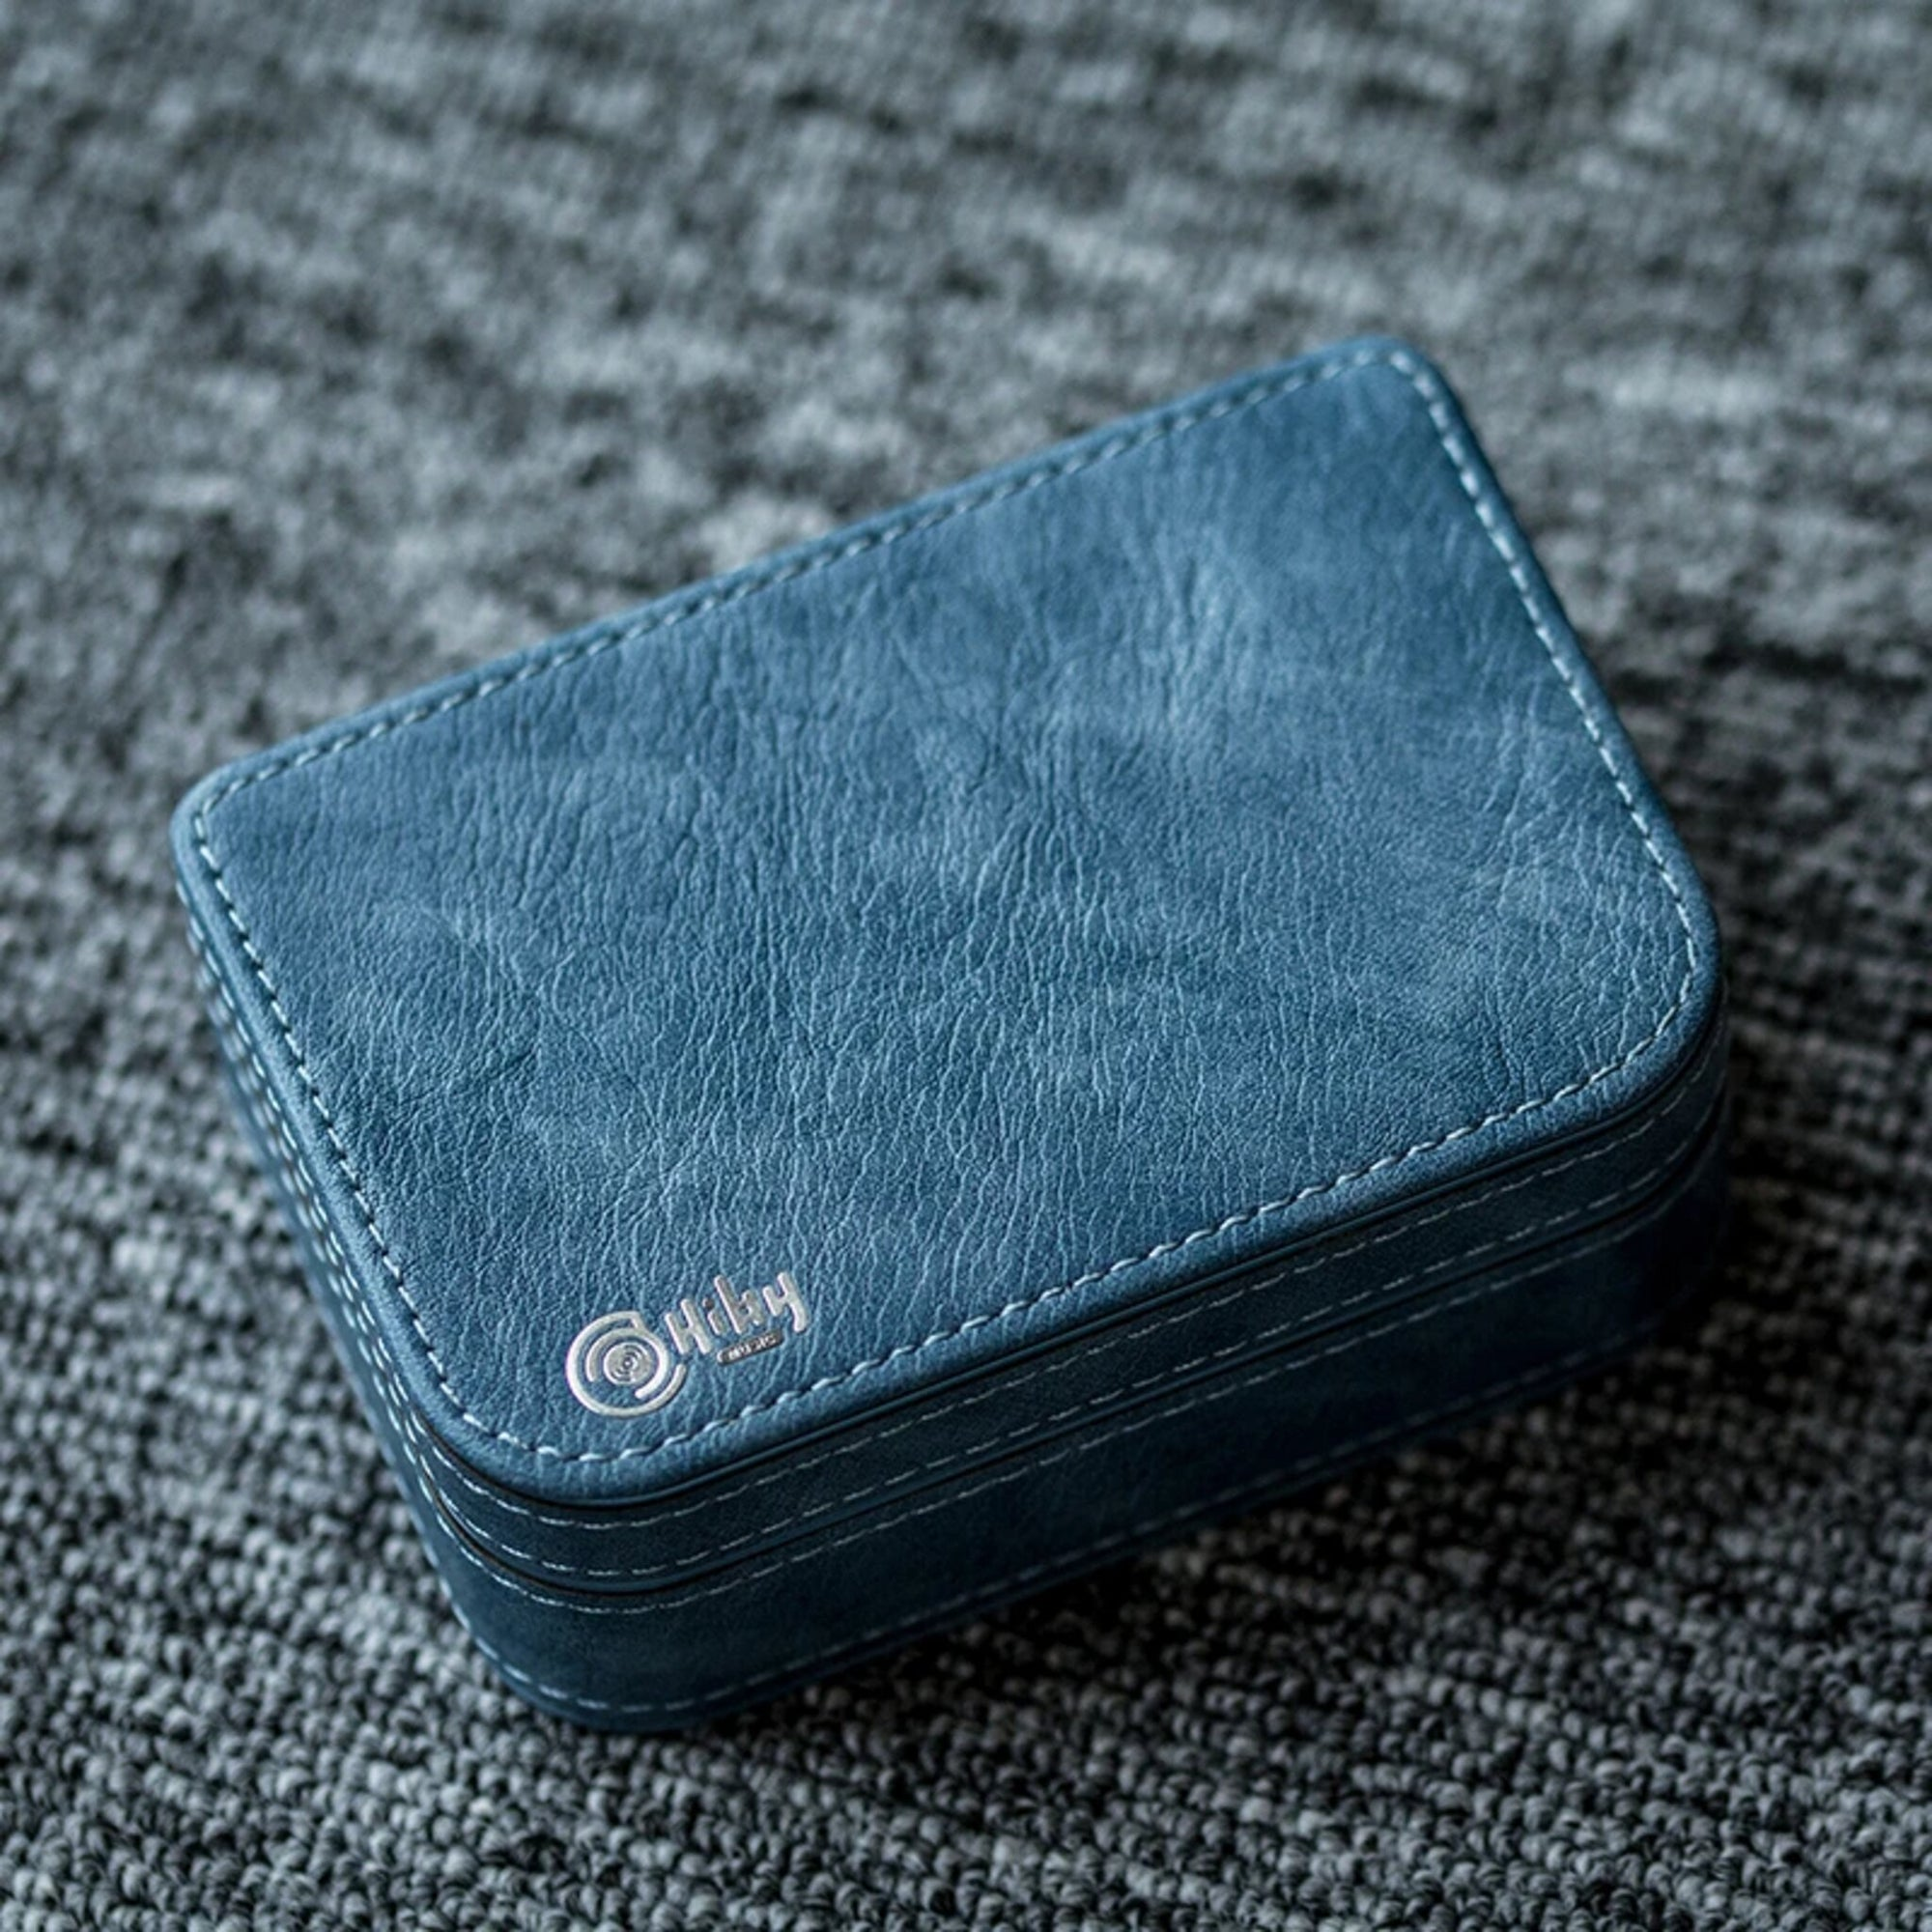 Premium Leather Storage Case - Gears For Ears